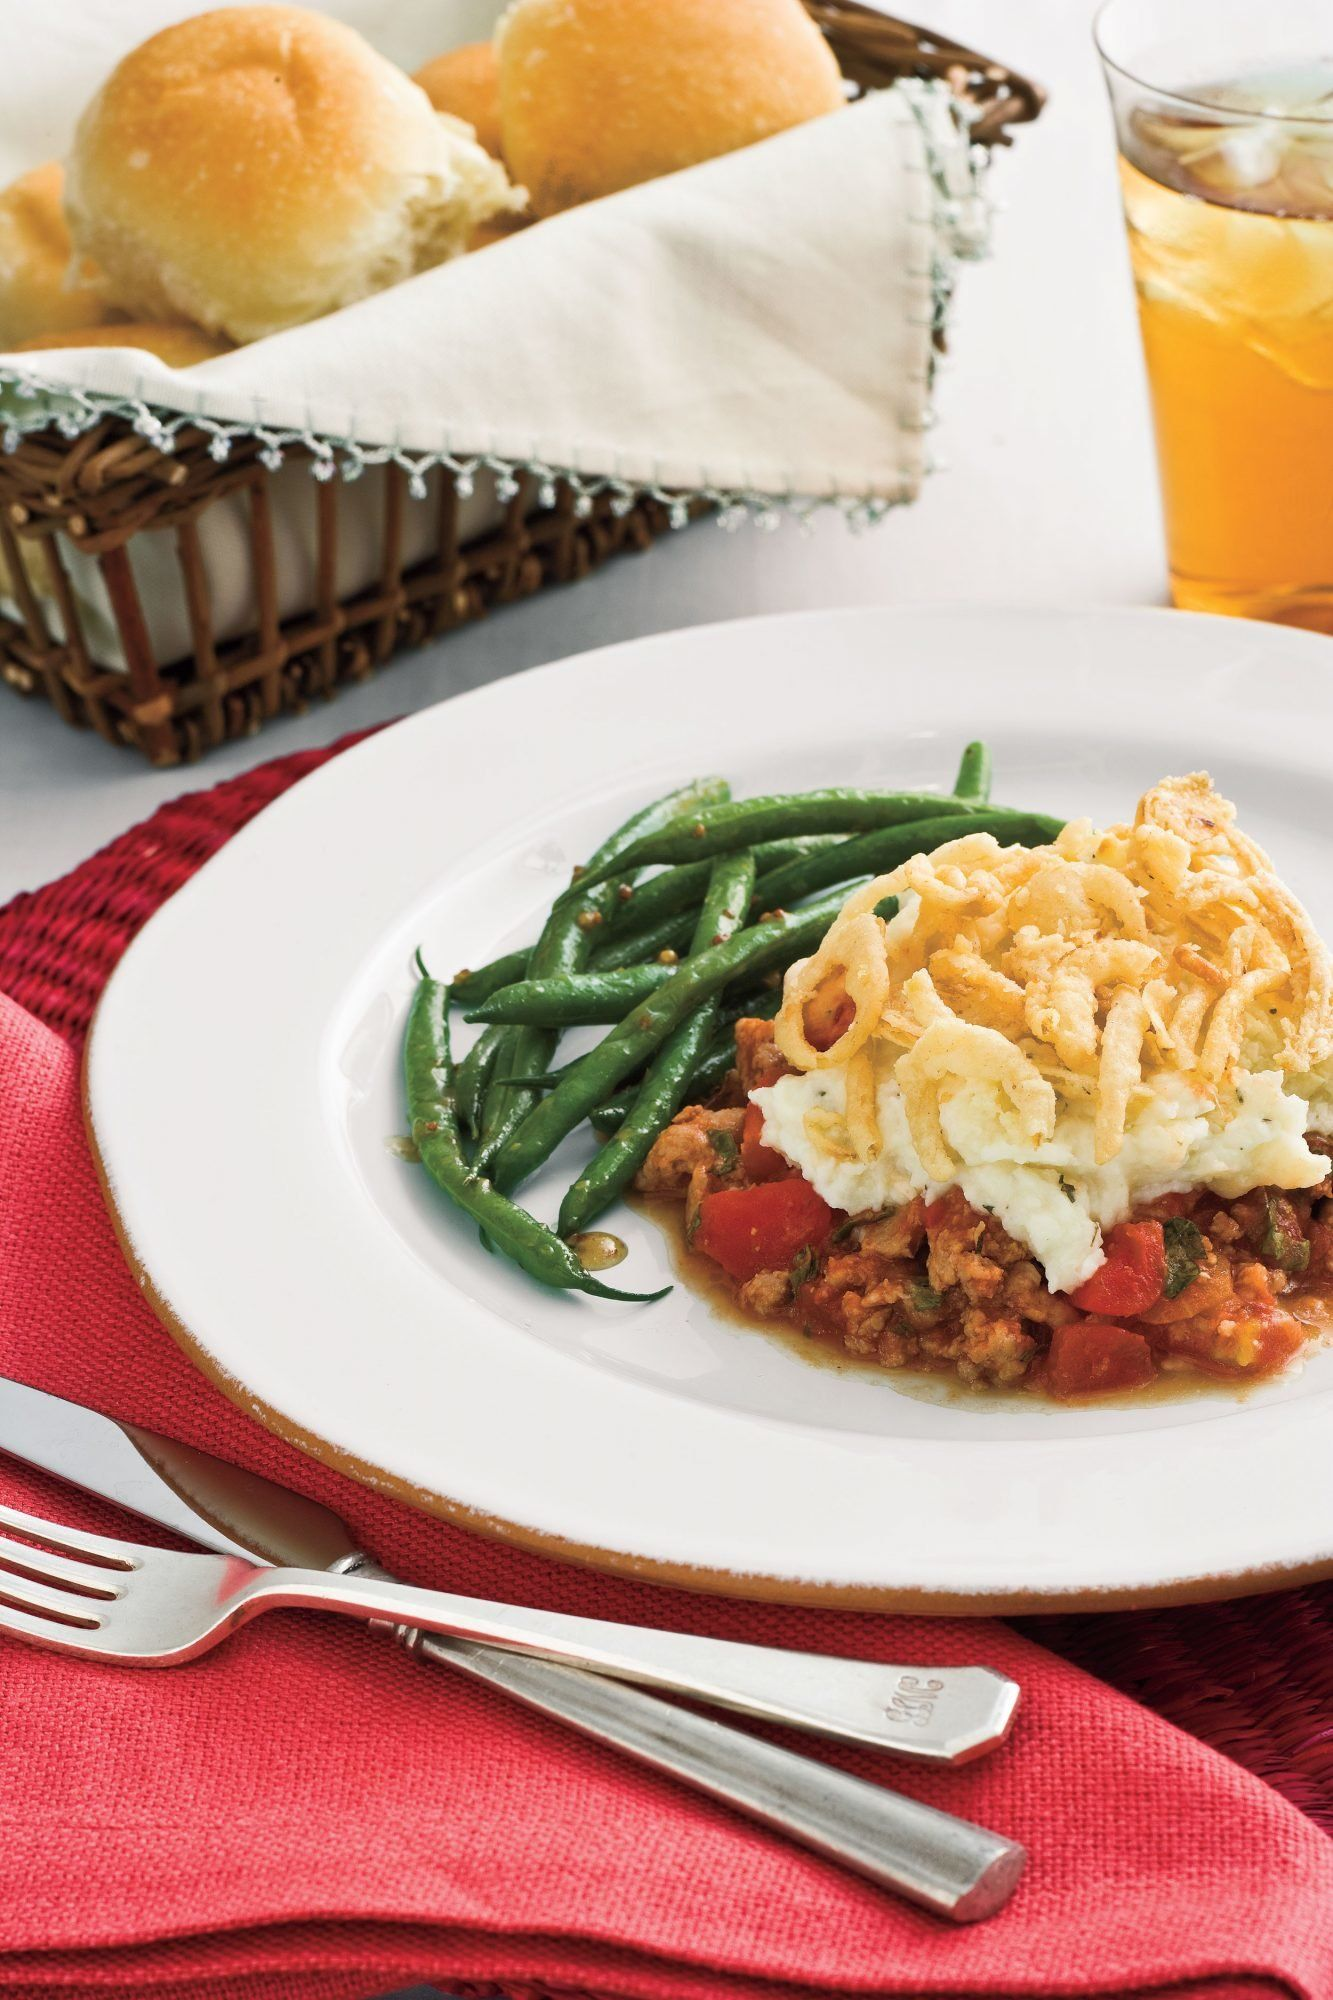 Christmas Eve Casseroles Fit For a Crowd   Dinner casserole recipes, Casserole recipes, Potatoe ...